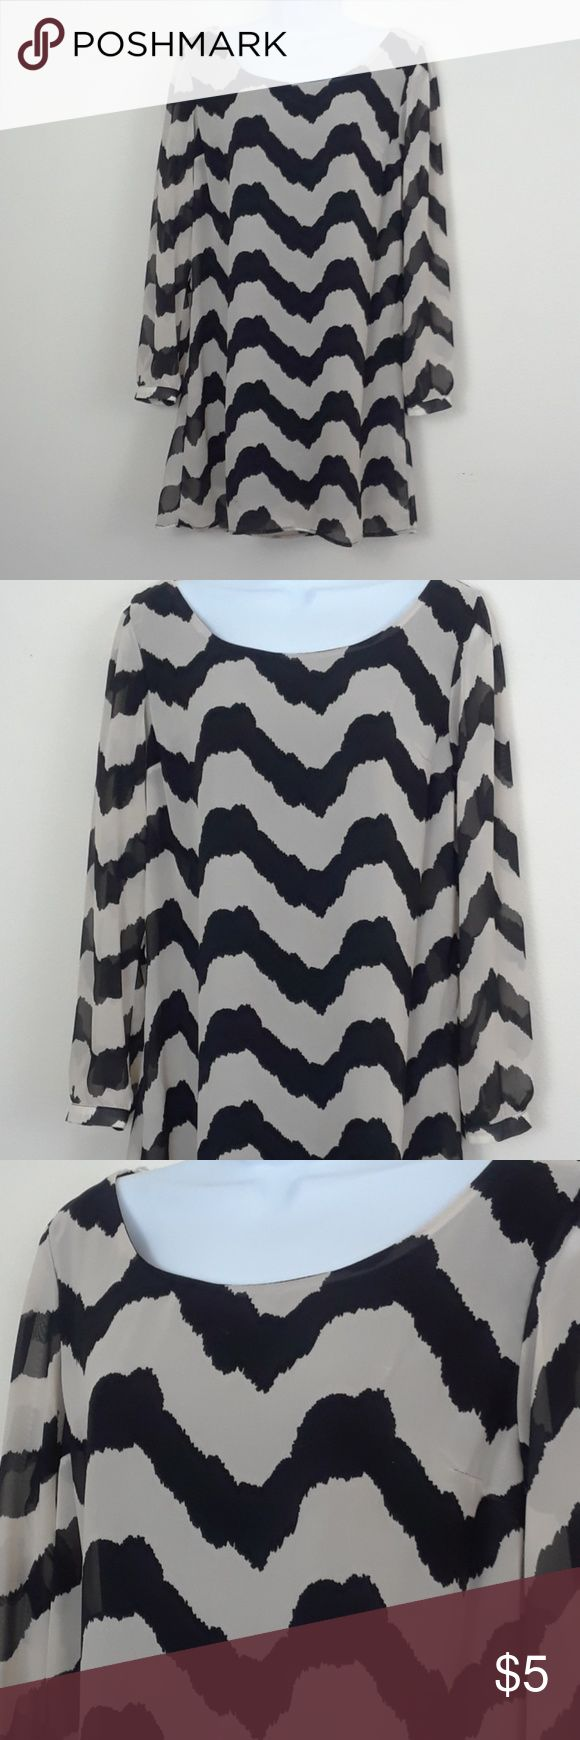 L8TER LONG SLEEVE CHEVRON PRINT DRESS Size medium, black and off-white, semi sheer, lined, 100% polyester, a couple tiny pinholes in front near shoulder, smudge on upper back, a couple fade imperfections in fabric near smudge in back (pictured). L8ter Dresses Midi